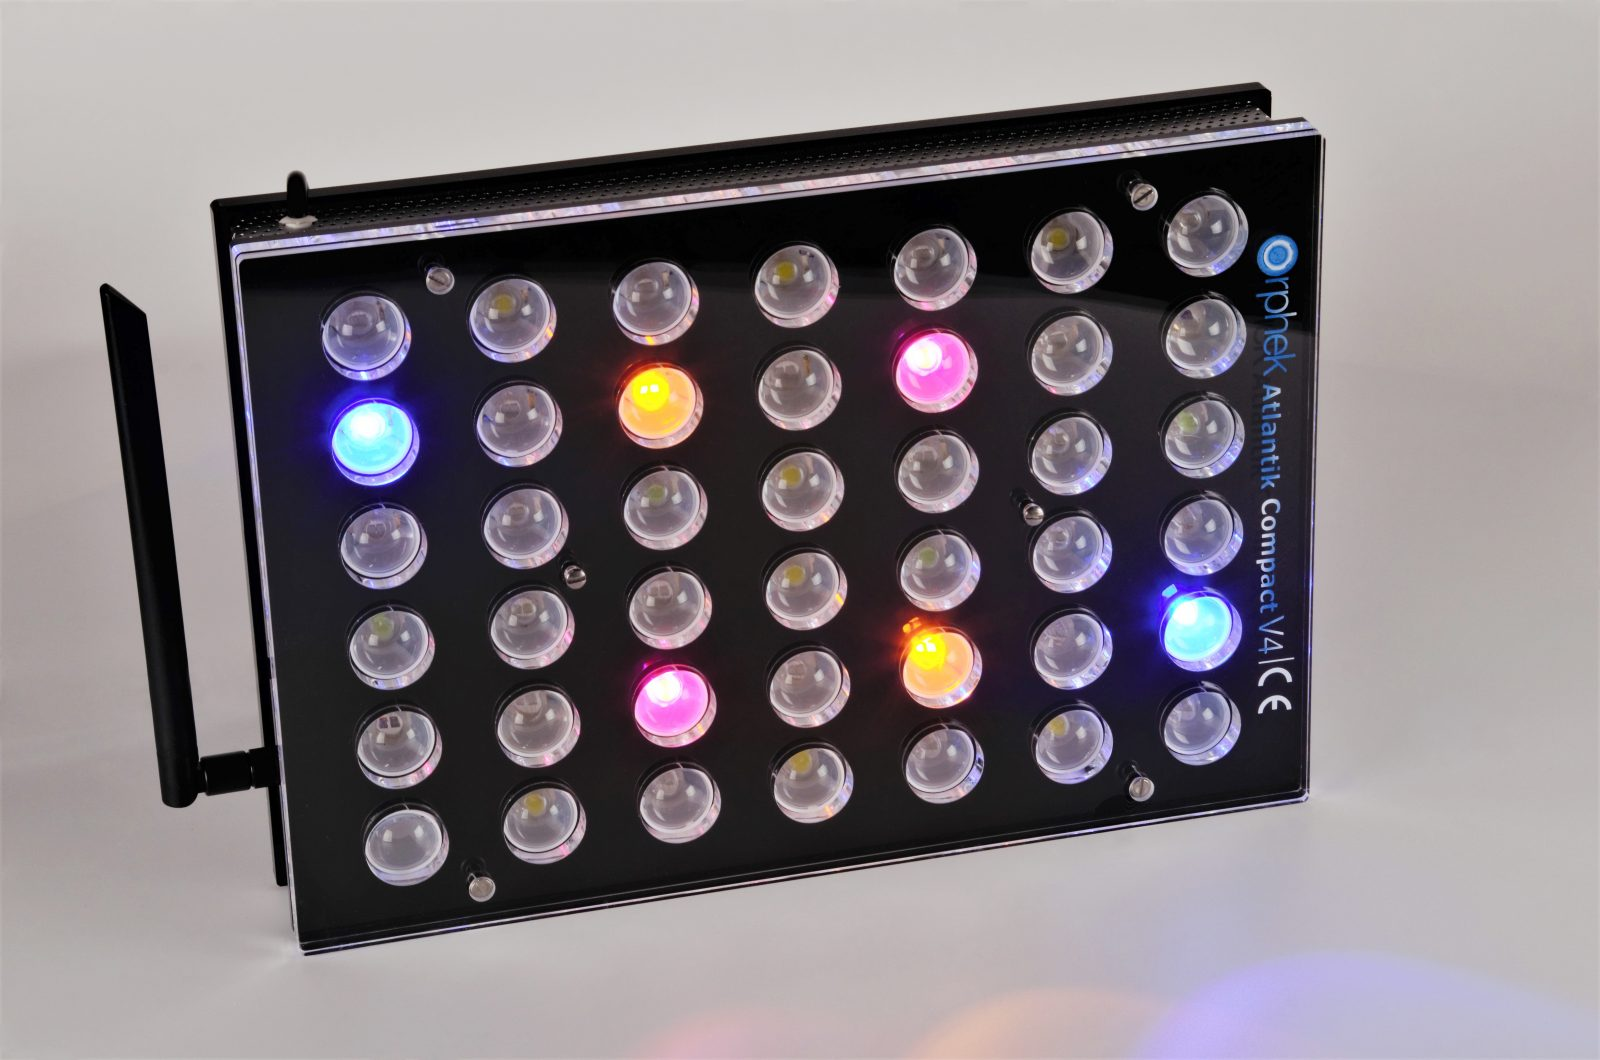 Orphek-Aquarium-LED-Lighting-Atlantik -Compact-V4-light -on-channel 4